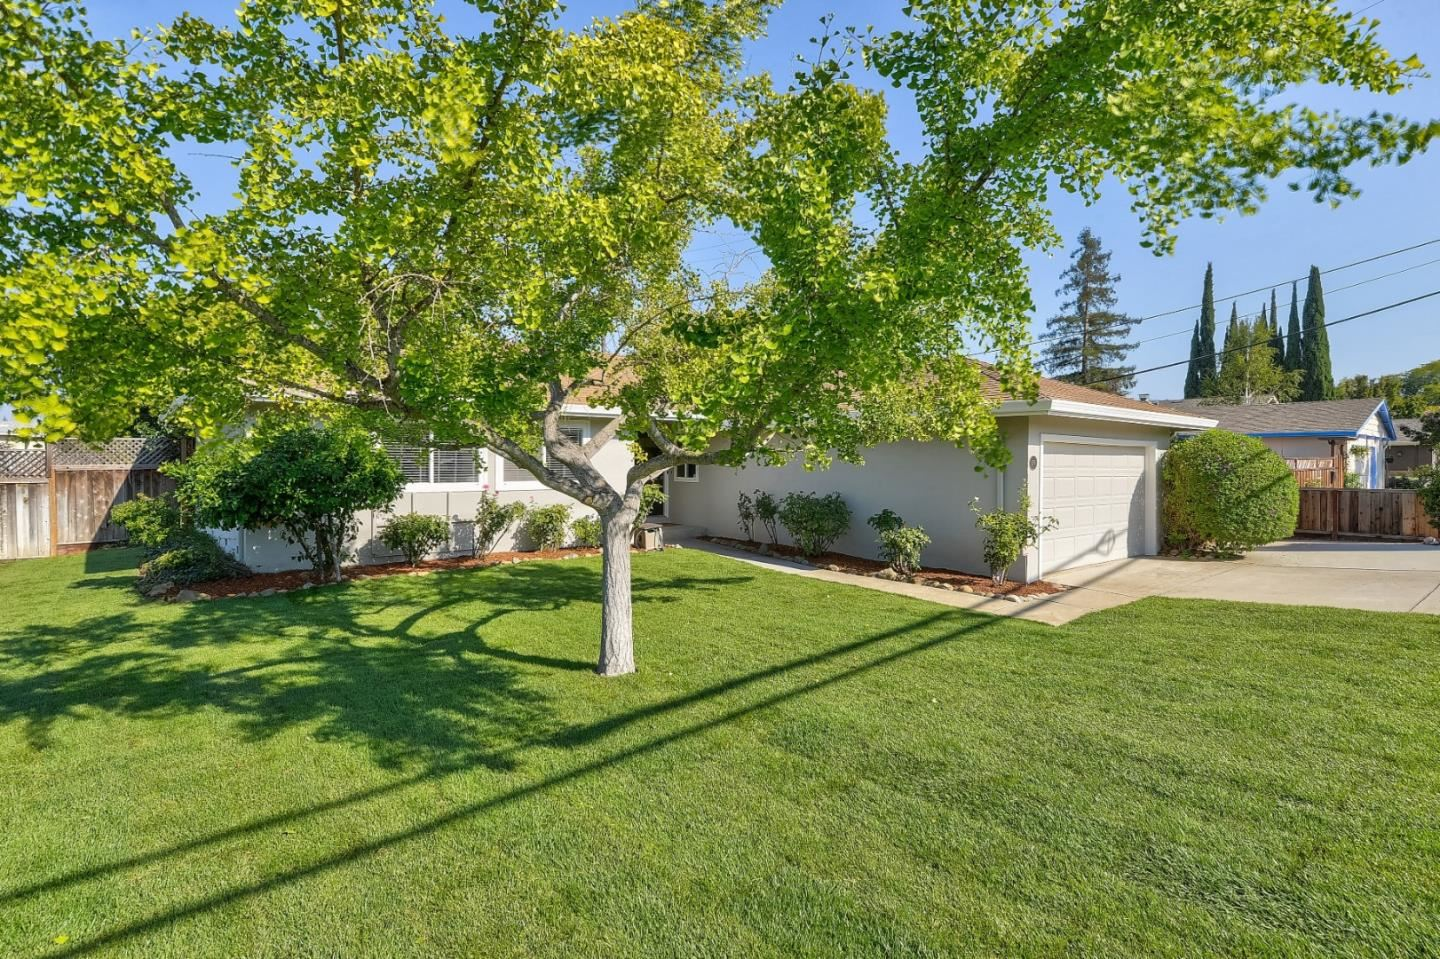 Photo for 170 Wedgewood AVE, LOS GATOS, CA 95032 (MLS # ML81809153)